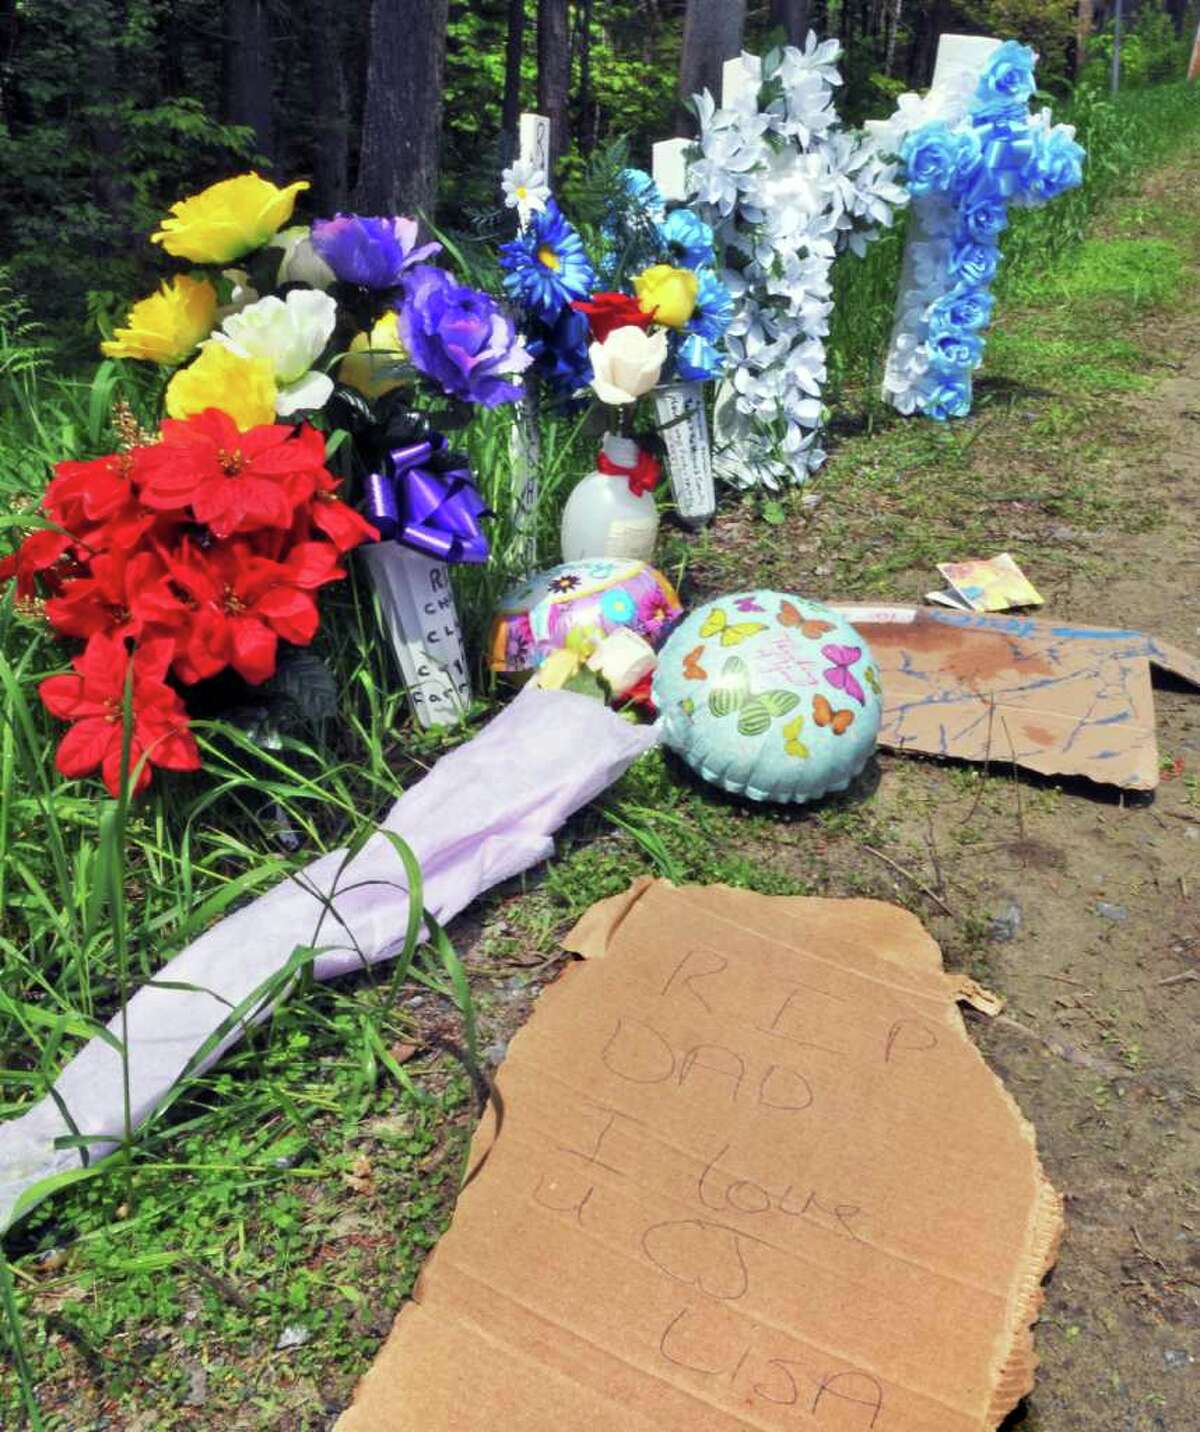 A roadside memorial Tuesday afternoon, May 24, 2011, marks the scene where Chad Finch was fatally struck by a vehicle driven by an off-duty state trooper early Sunday morning along County Route 110 in Broadalbin. (John Carl D'Annibale / Times Union)